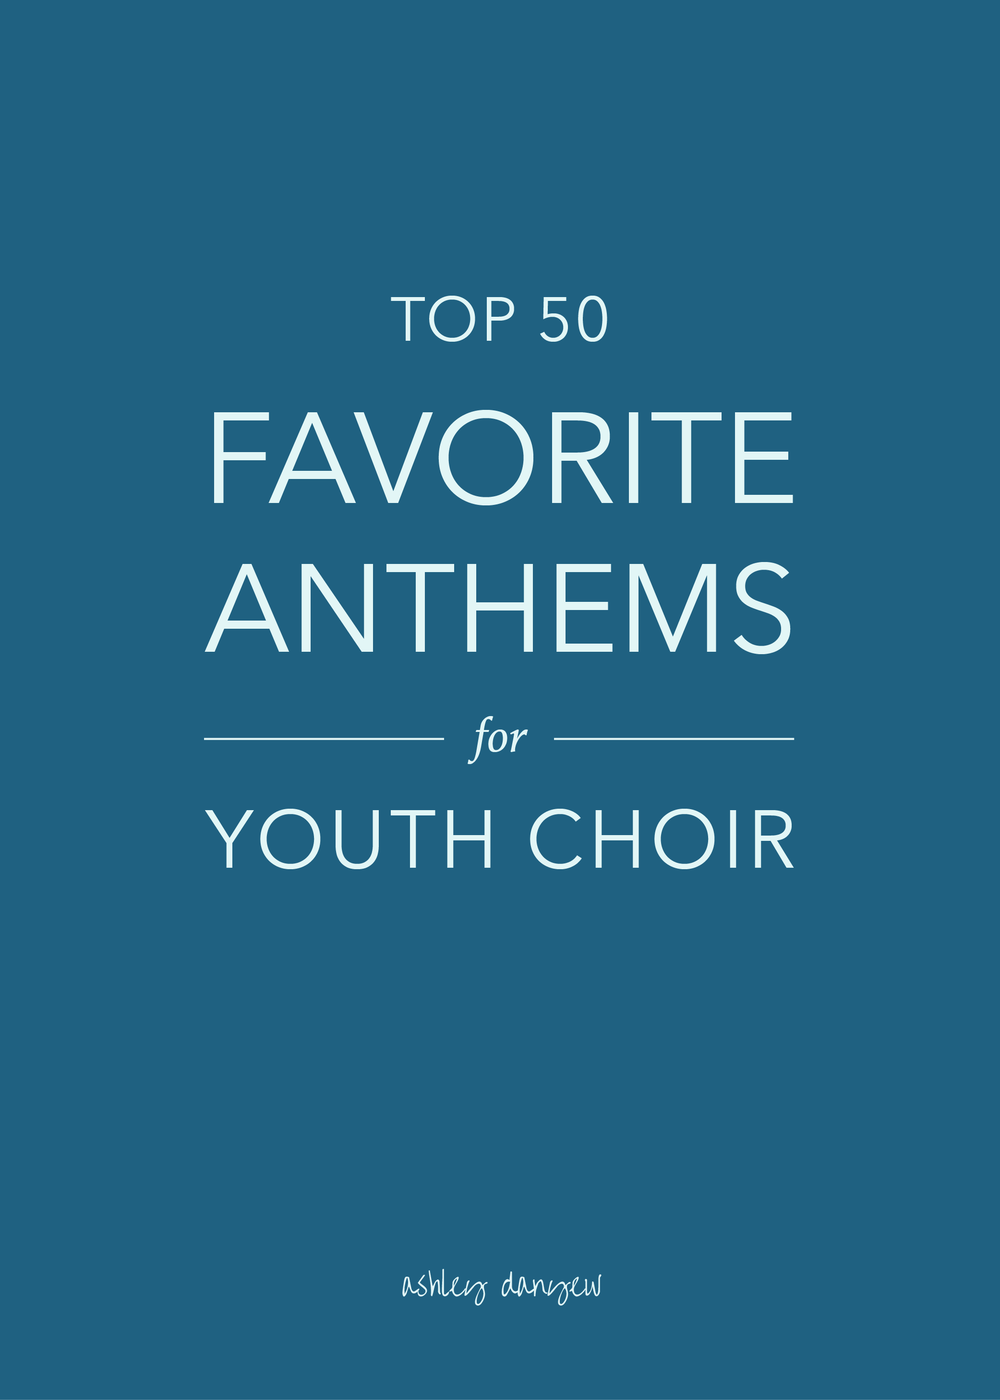 Top 50 Favorite Anthems for Youth Choir-01.png